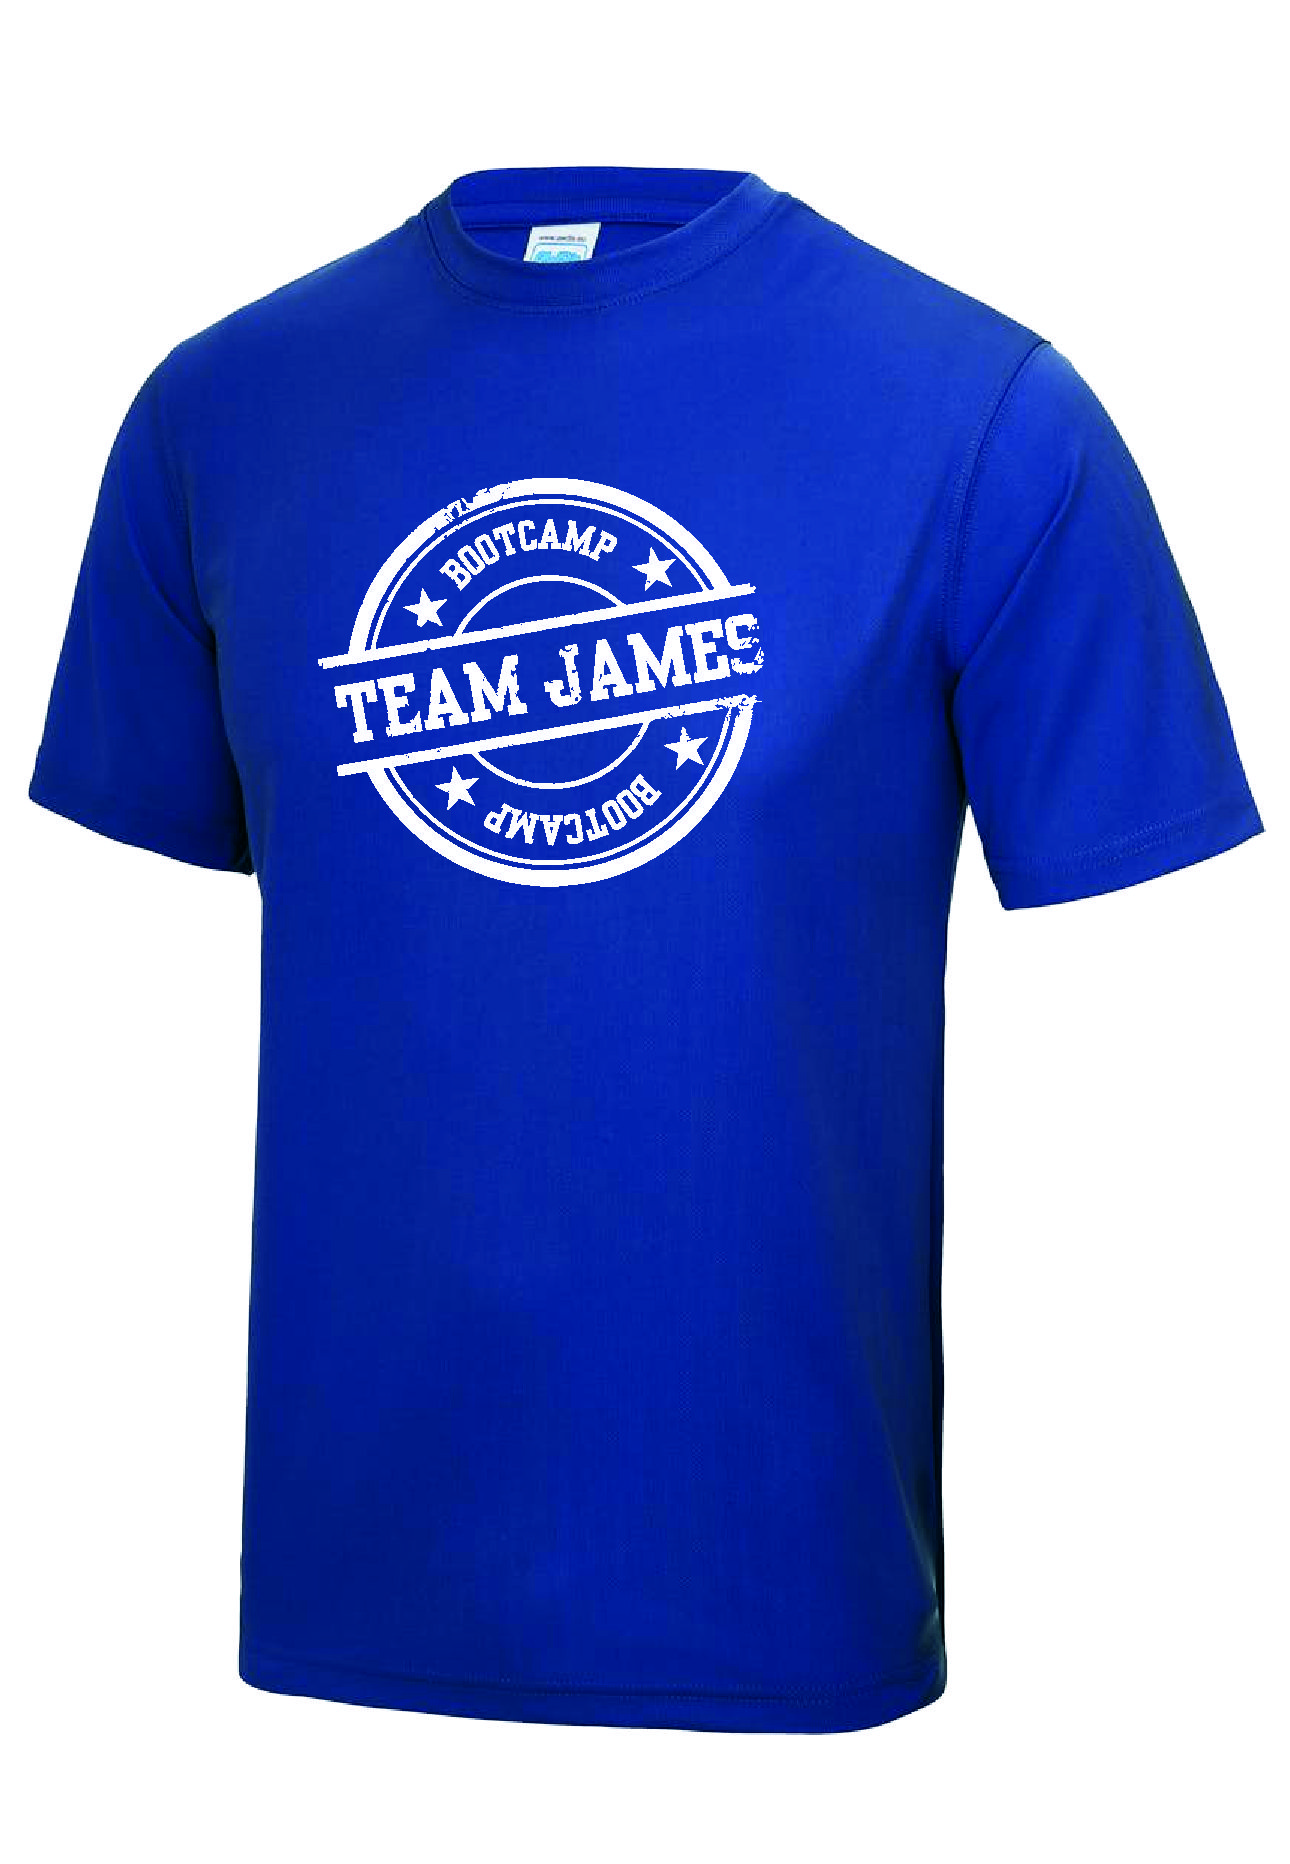 Team James - Performance Tee (Unisex)